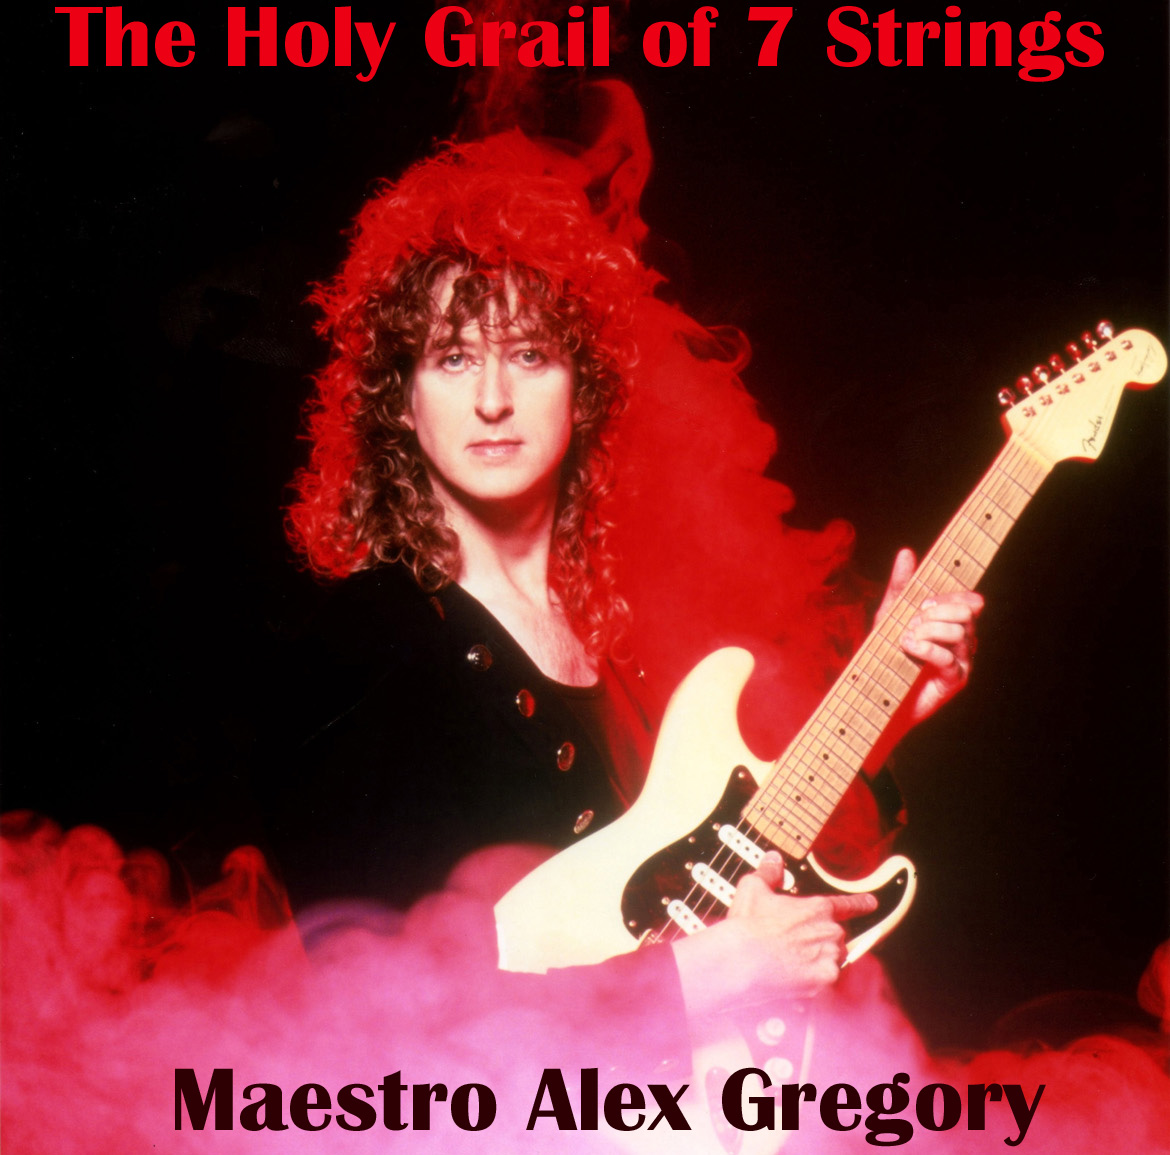 holygrailof7strings.jpg